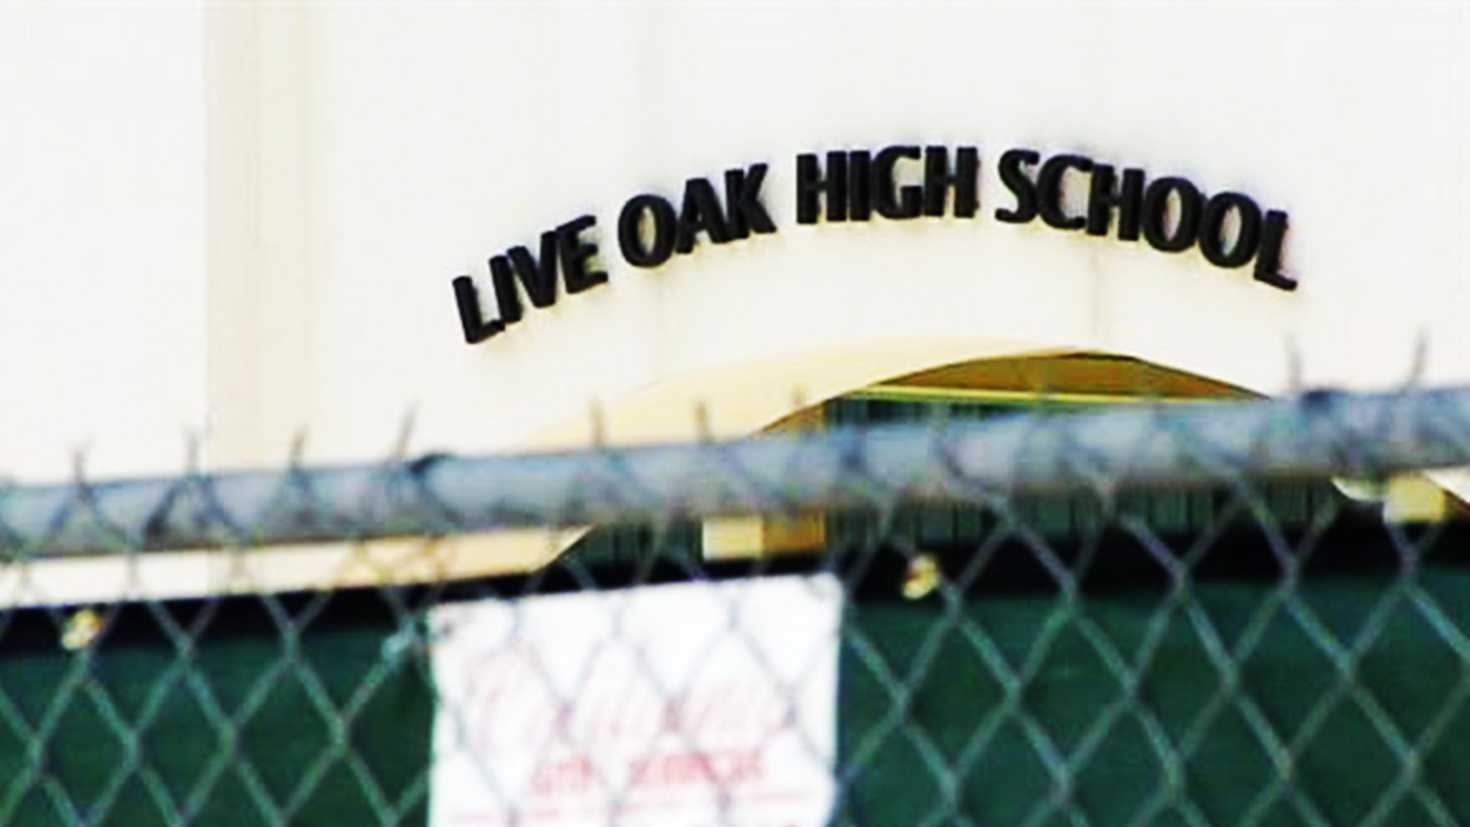 A fence was constructed around Live Oak High School for Cinco De Mayo.